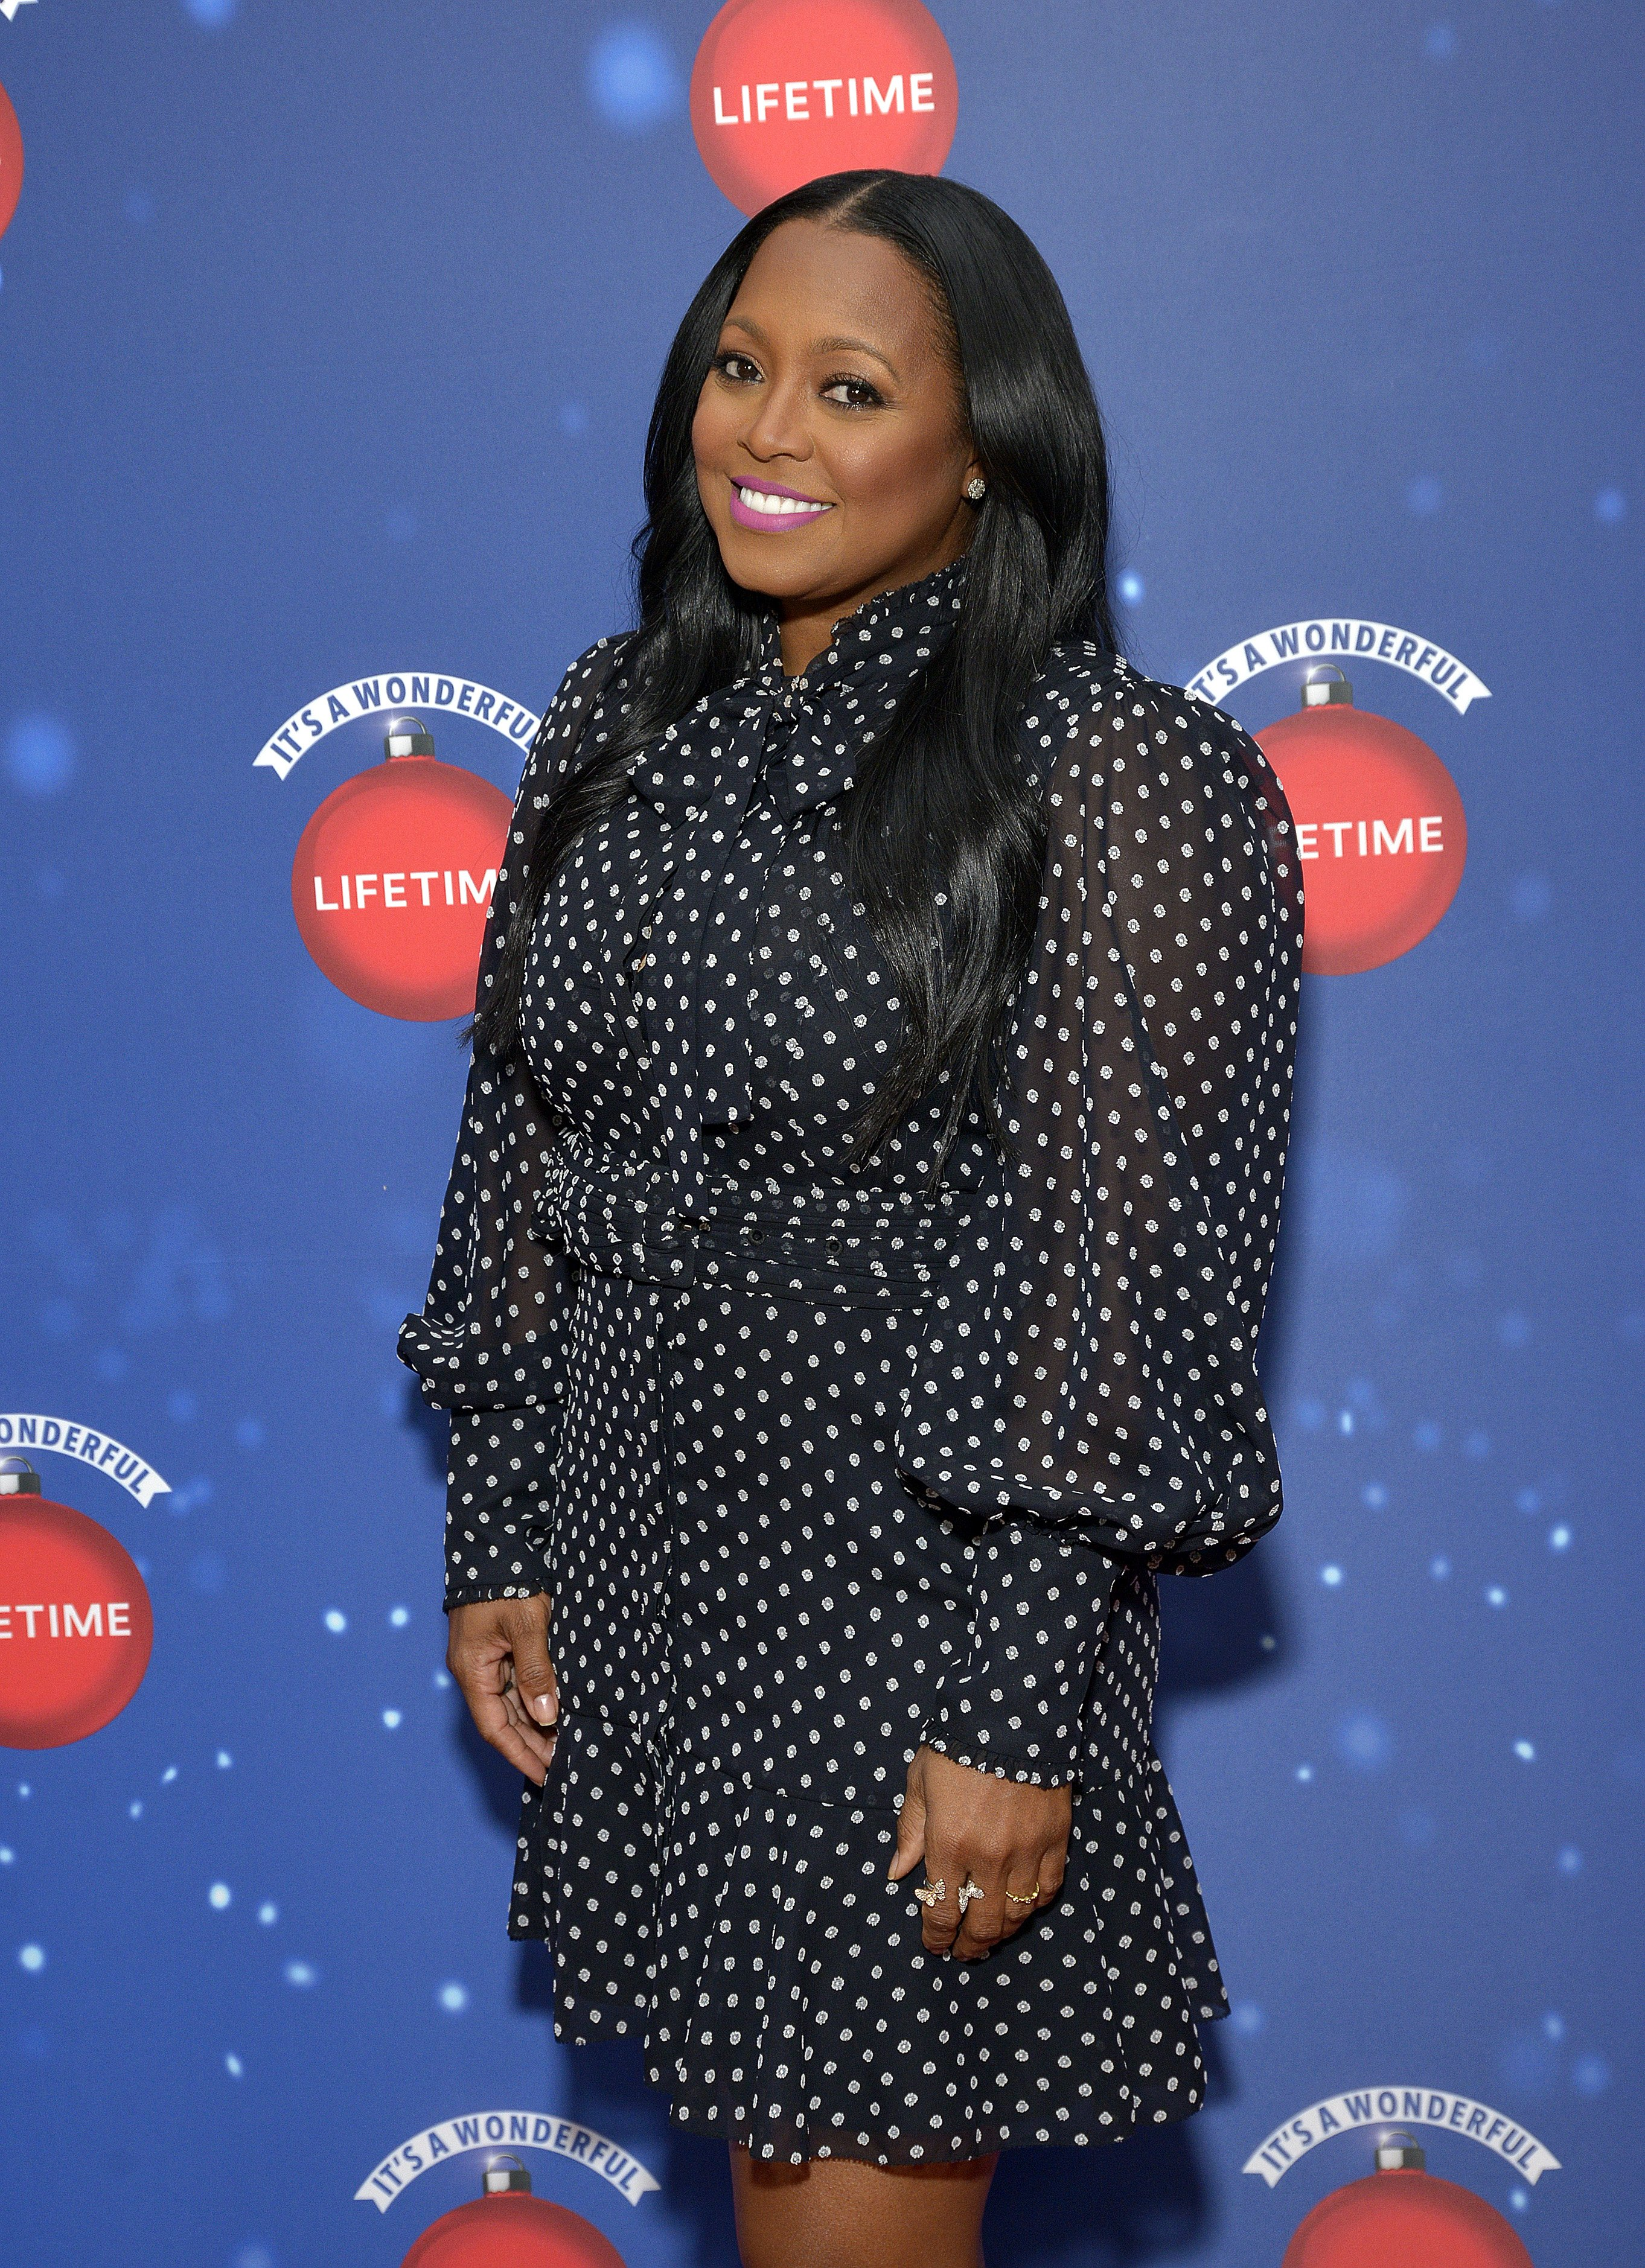 """Keshia Knight Pulliam attends the """"Say Santa"""" event at Glendale Galleria in Glendale, California on November 9, 2019. 